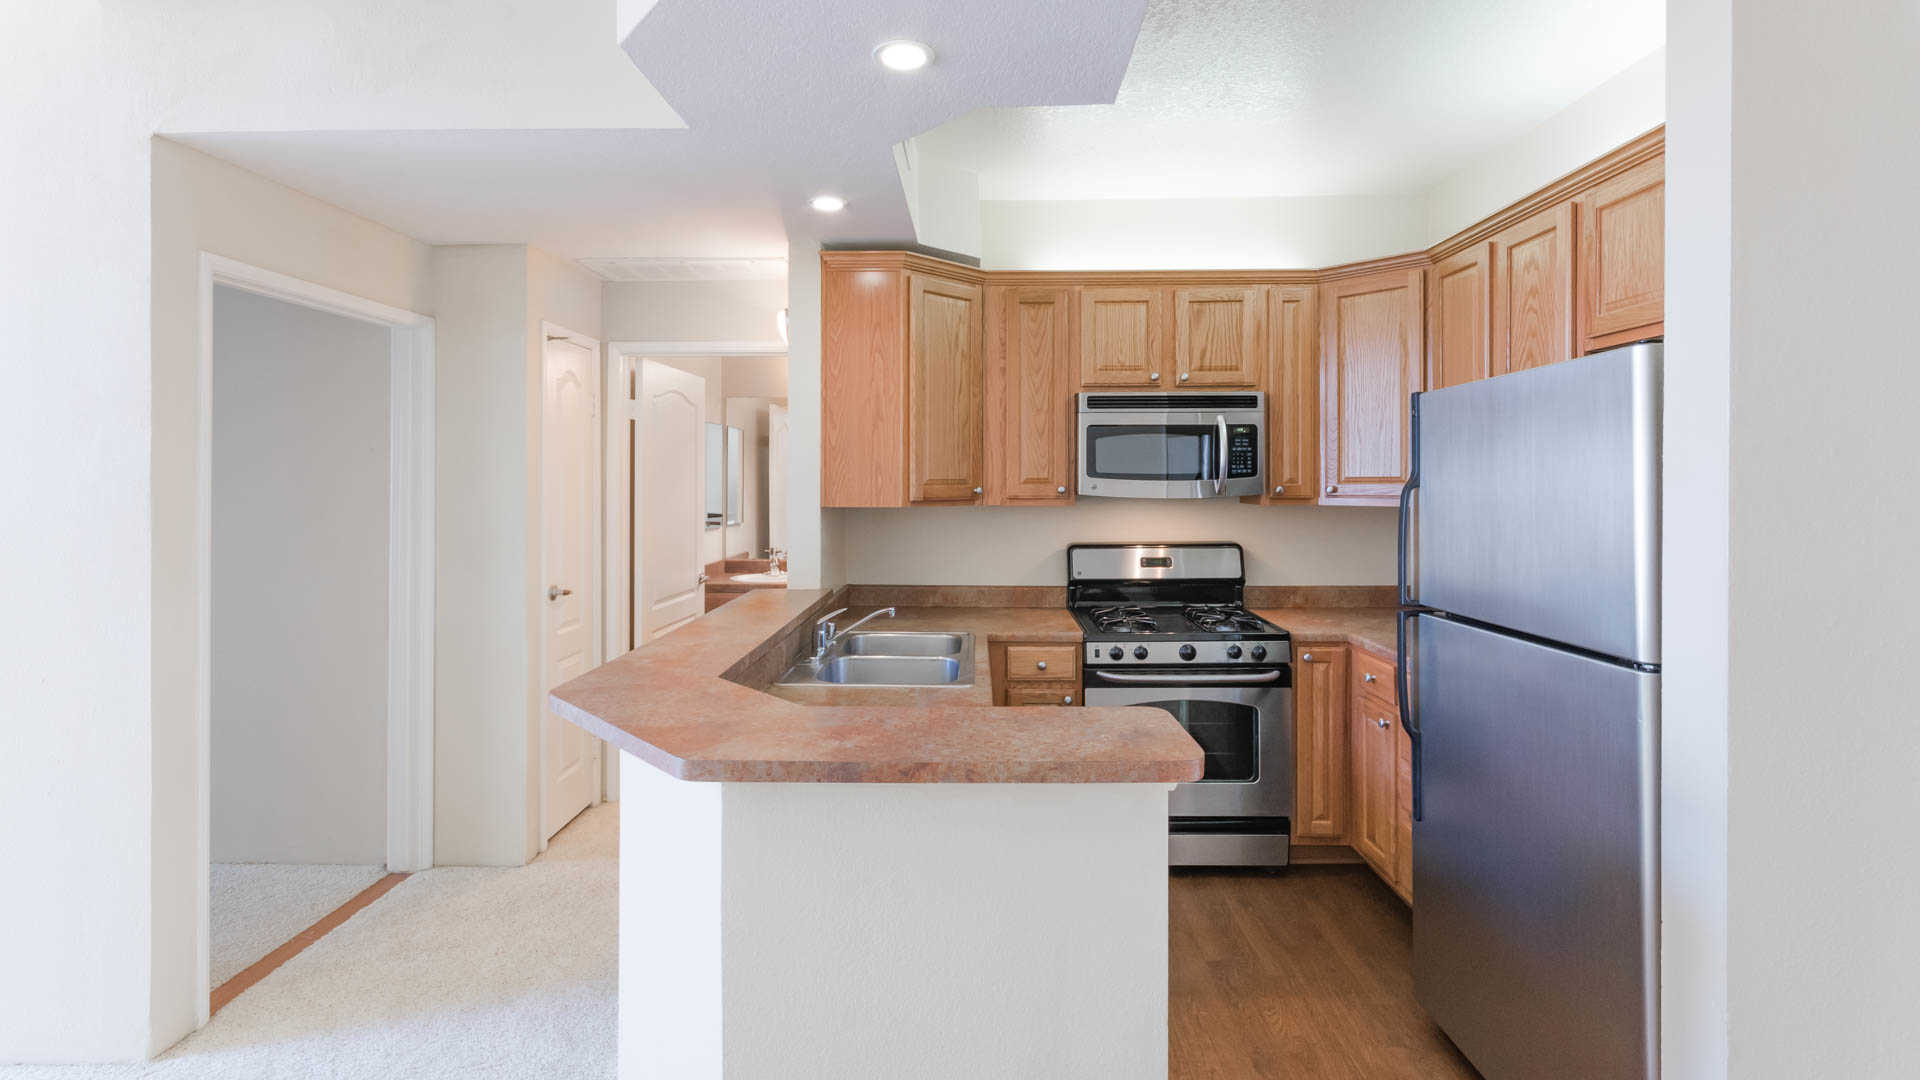 Academy Village Apartments   North Hollywood   5225 Blakeslee Ave. |  EquityApartments.com